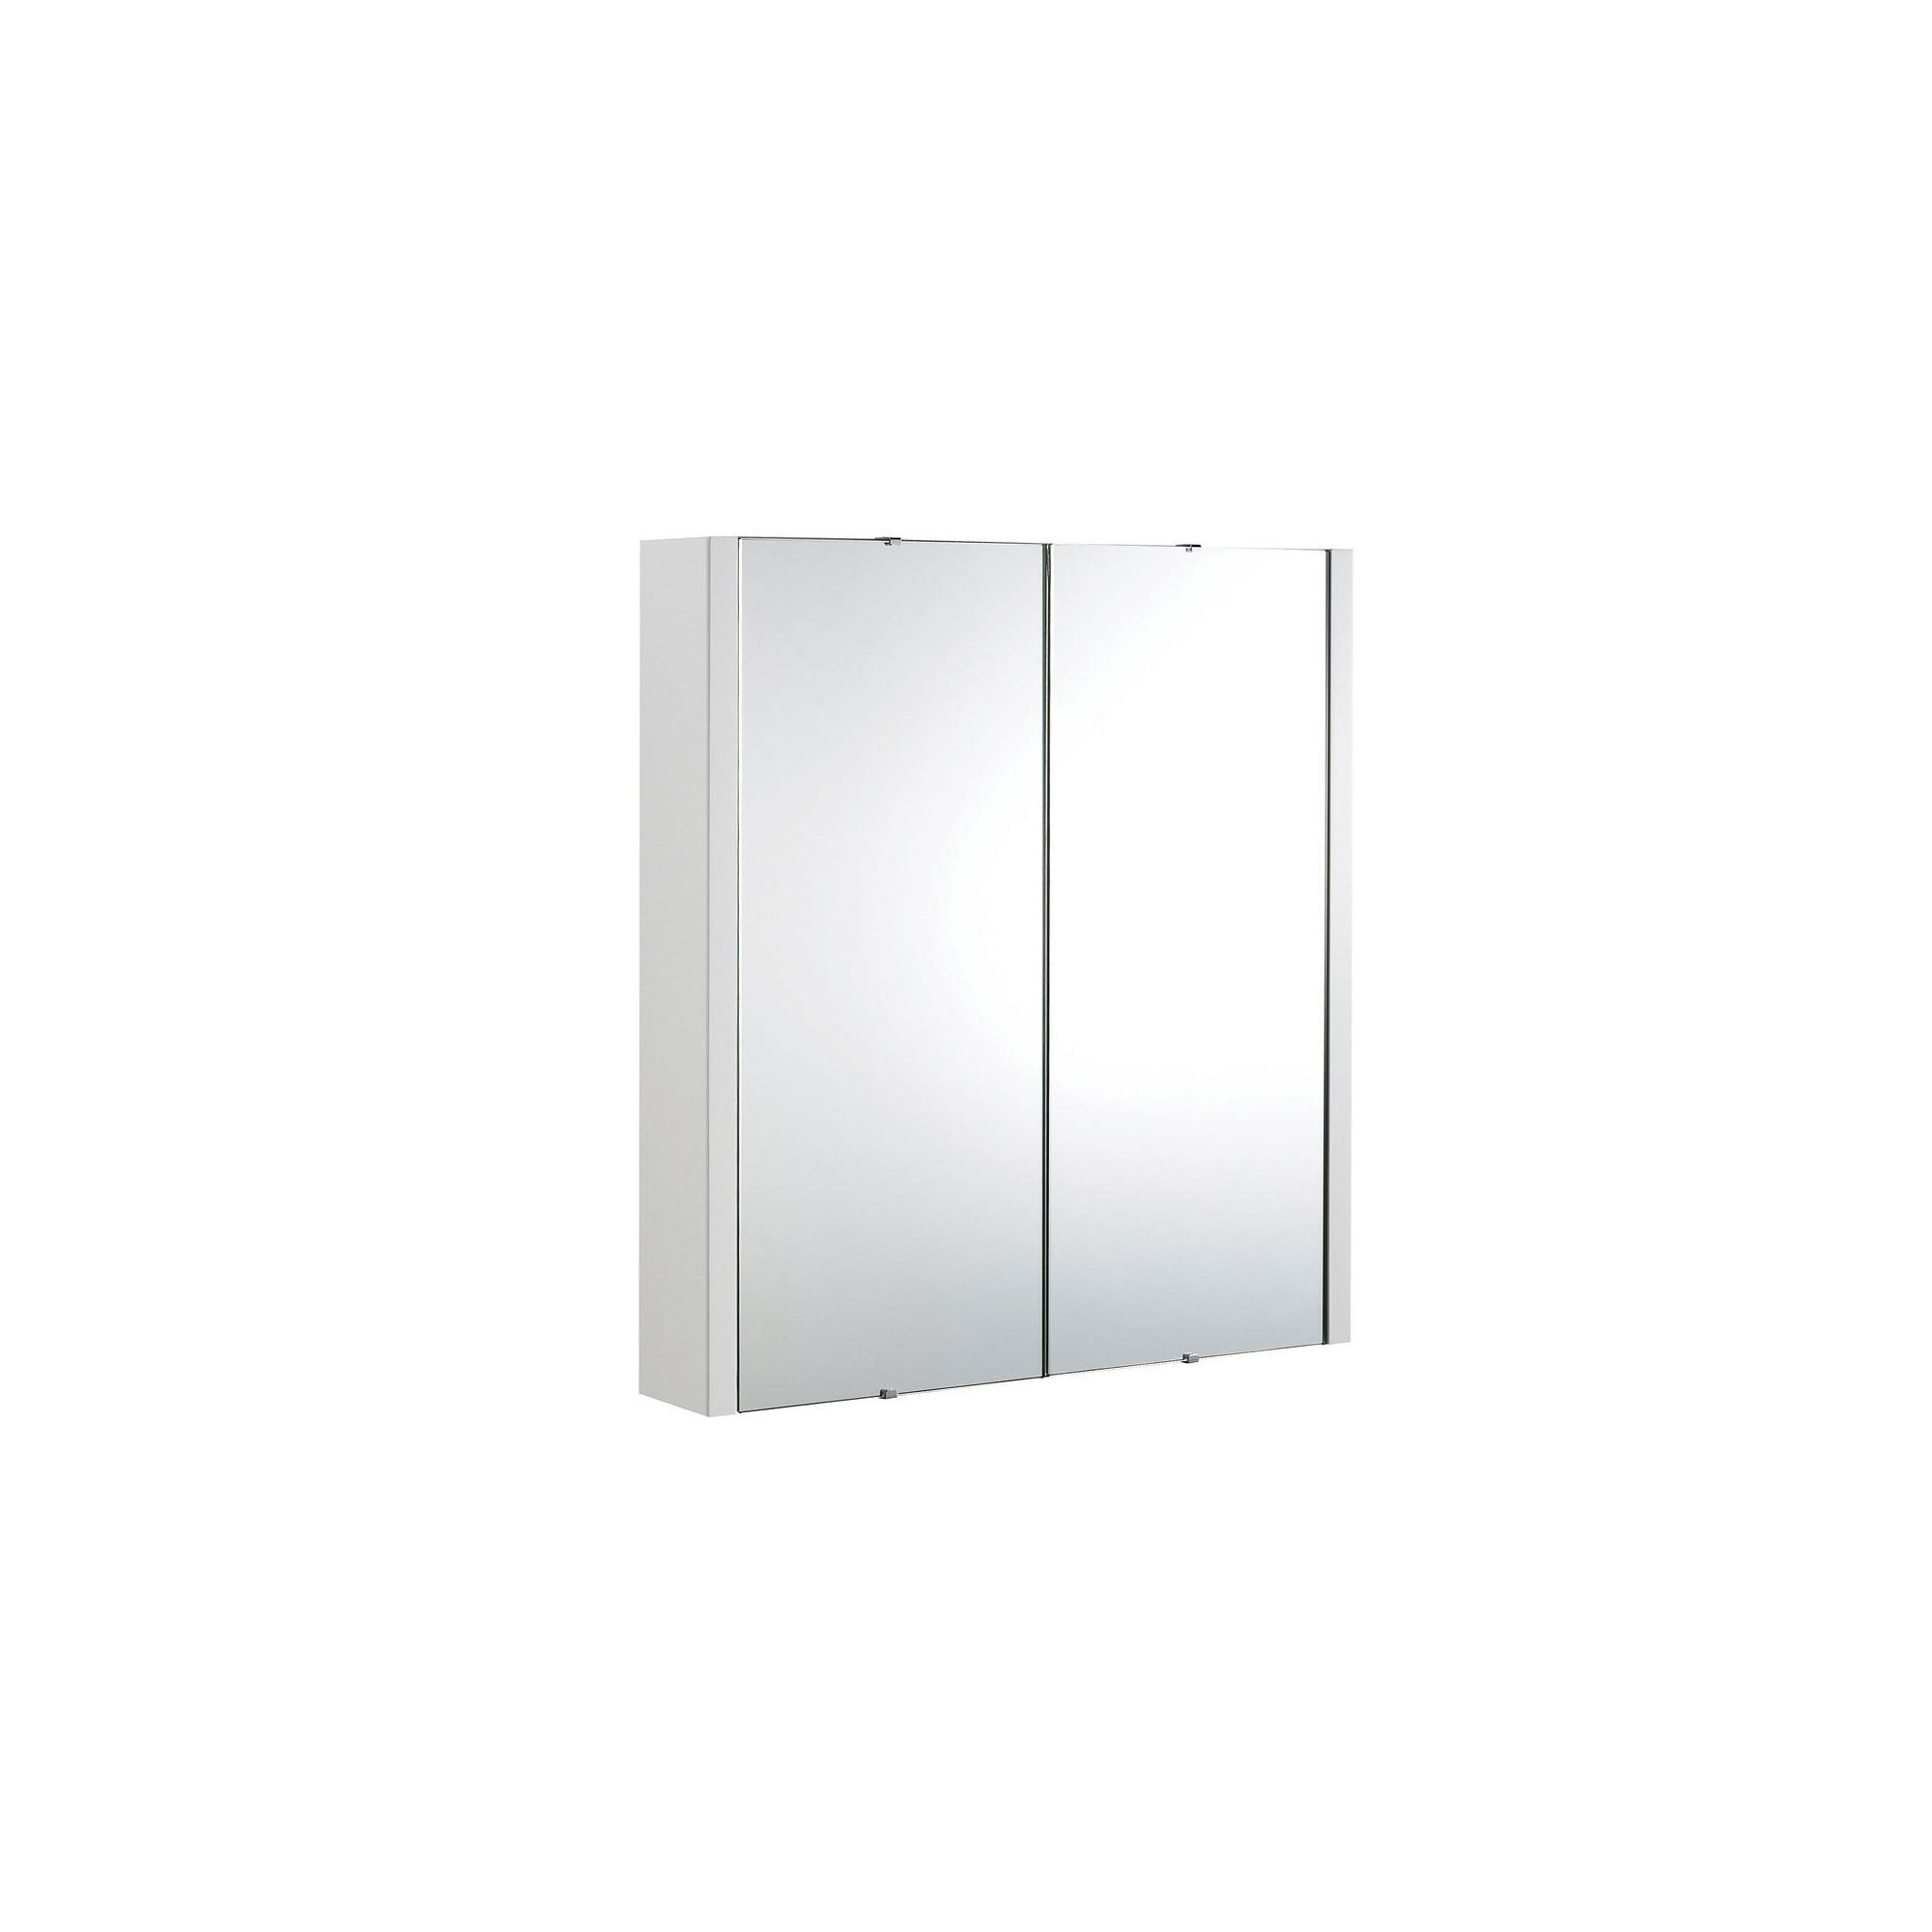 Ultra Lux White 2 Door Wall Mounted Mirror Cabinet 650mm High x 600mm Wide